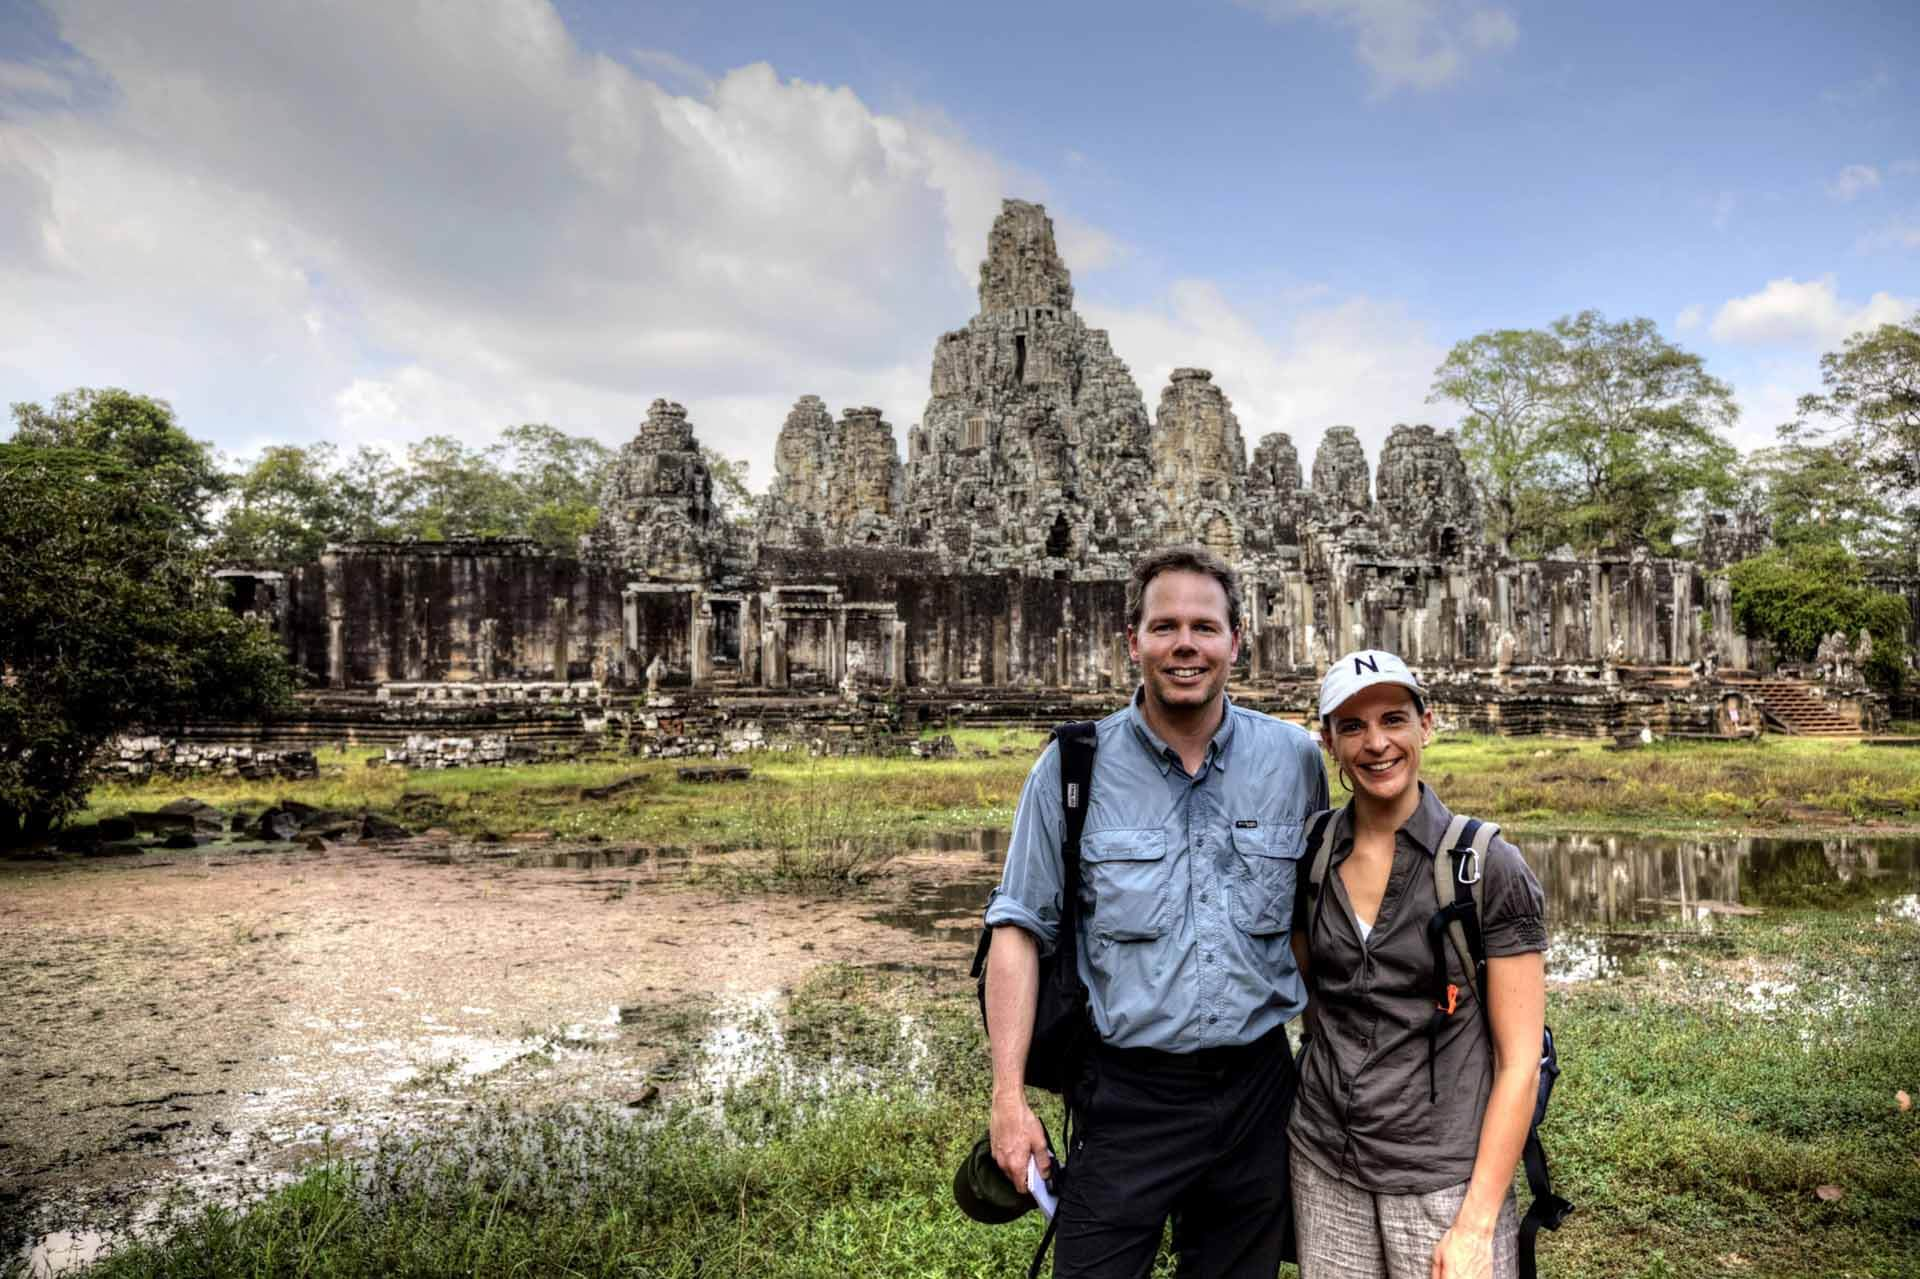 Nikki & Michi in Angkor Thom